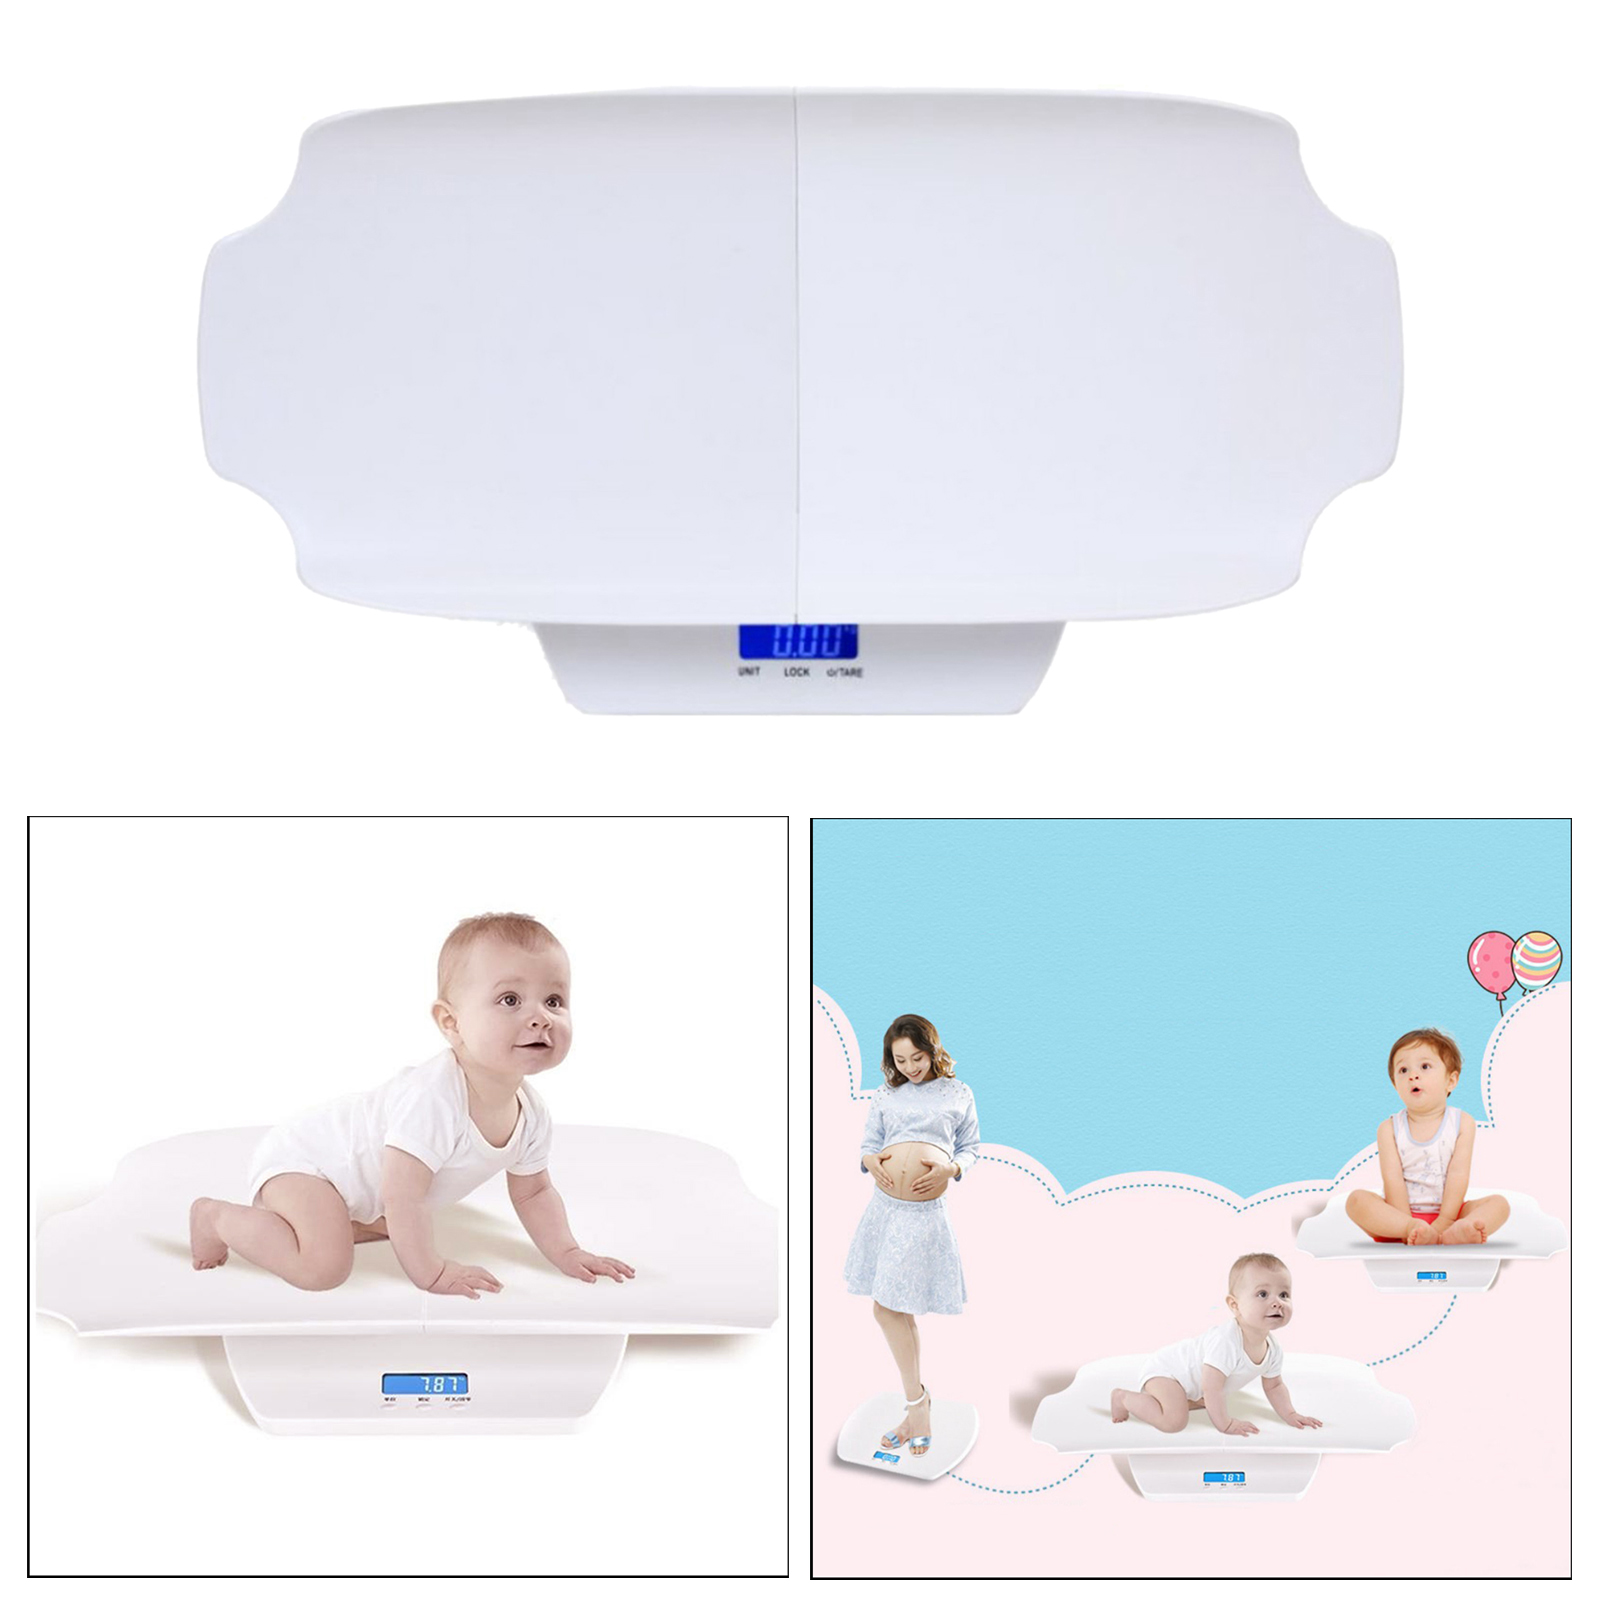 Baby Scale, Multi-Function Digital Baby Scale for Baby Pets Weight Accurately.Holding Function, LCD Display